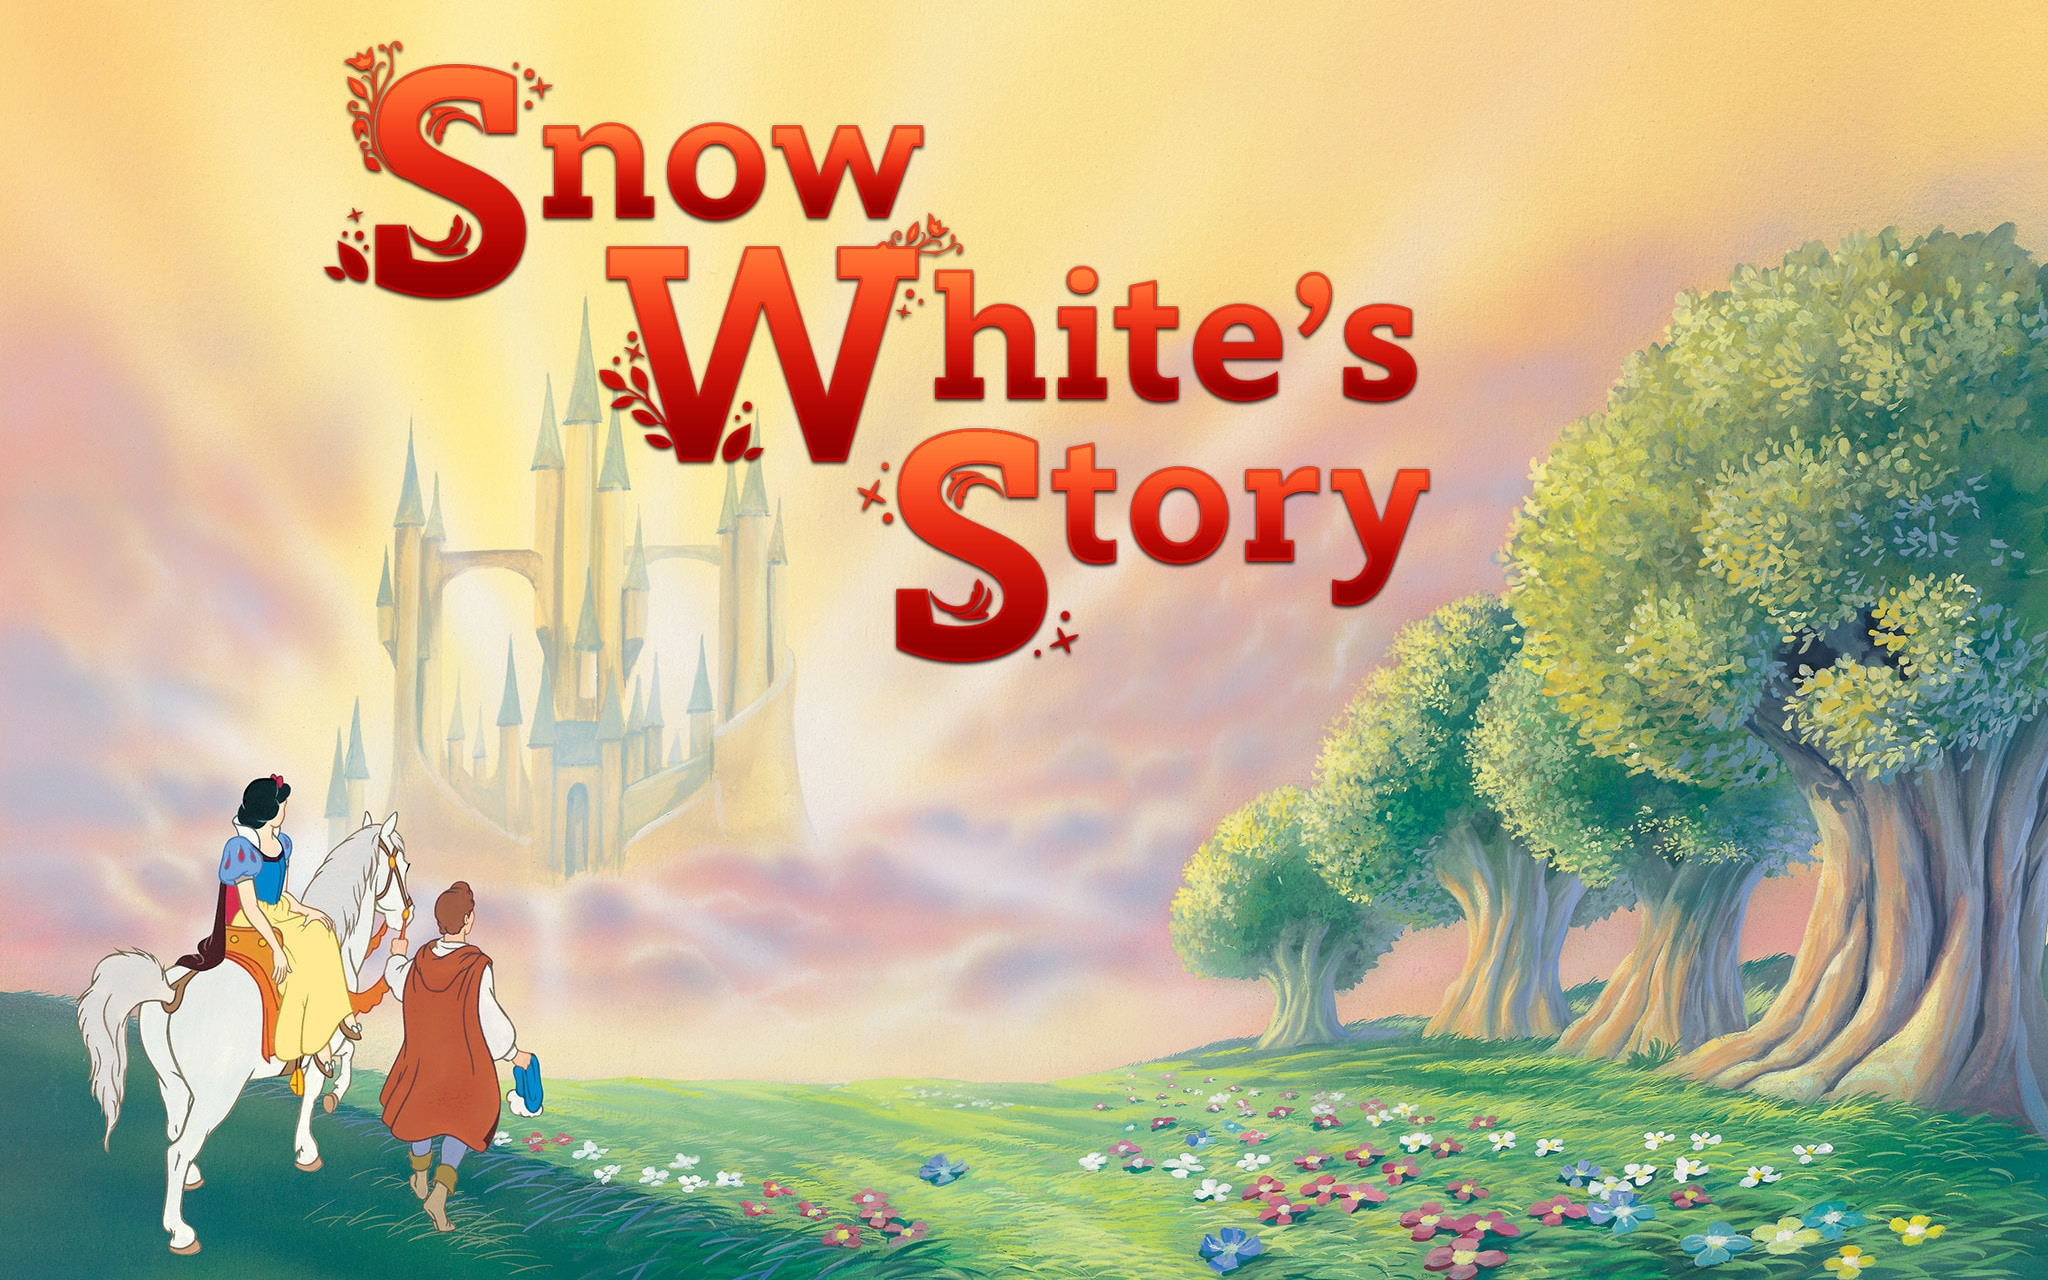 snow white and the seven dwarfs story in hindi pdf